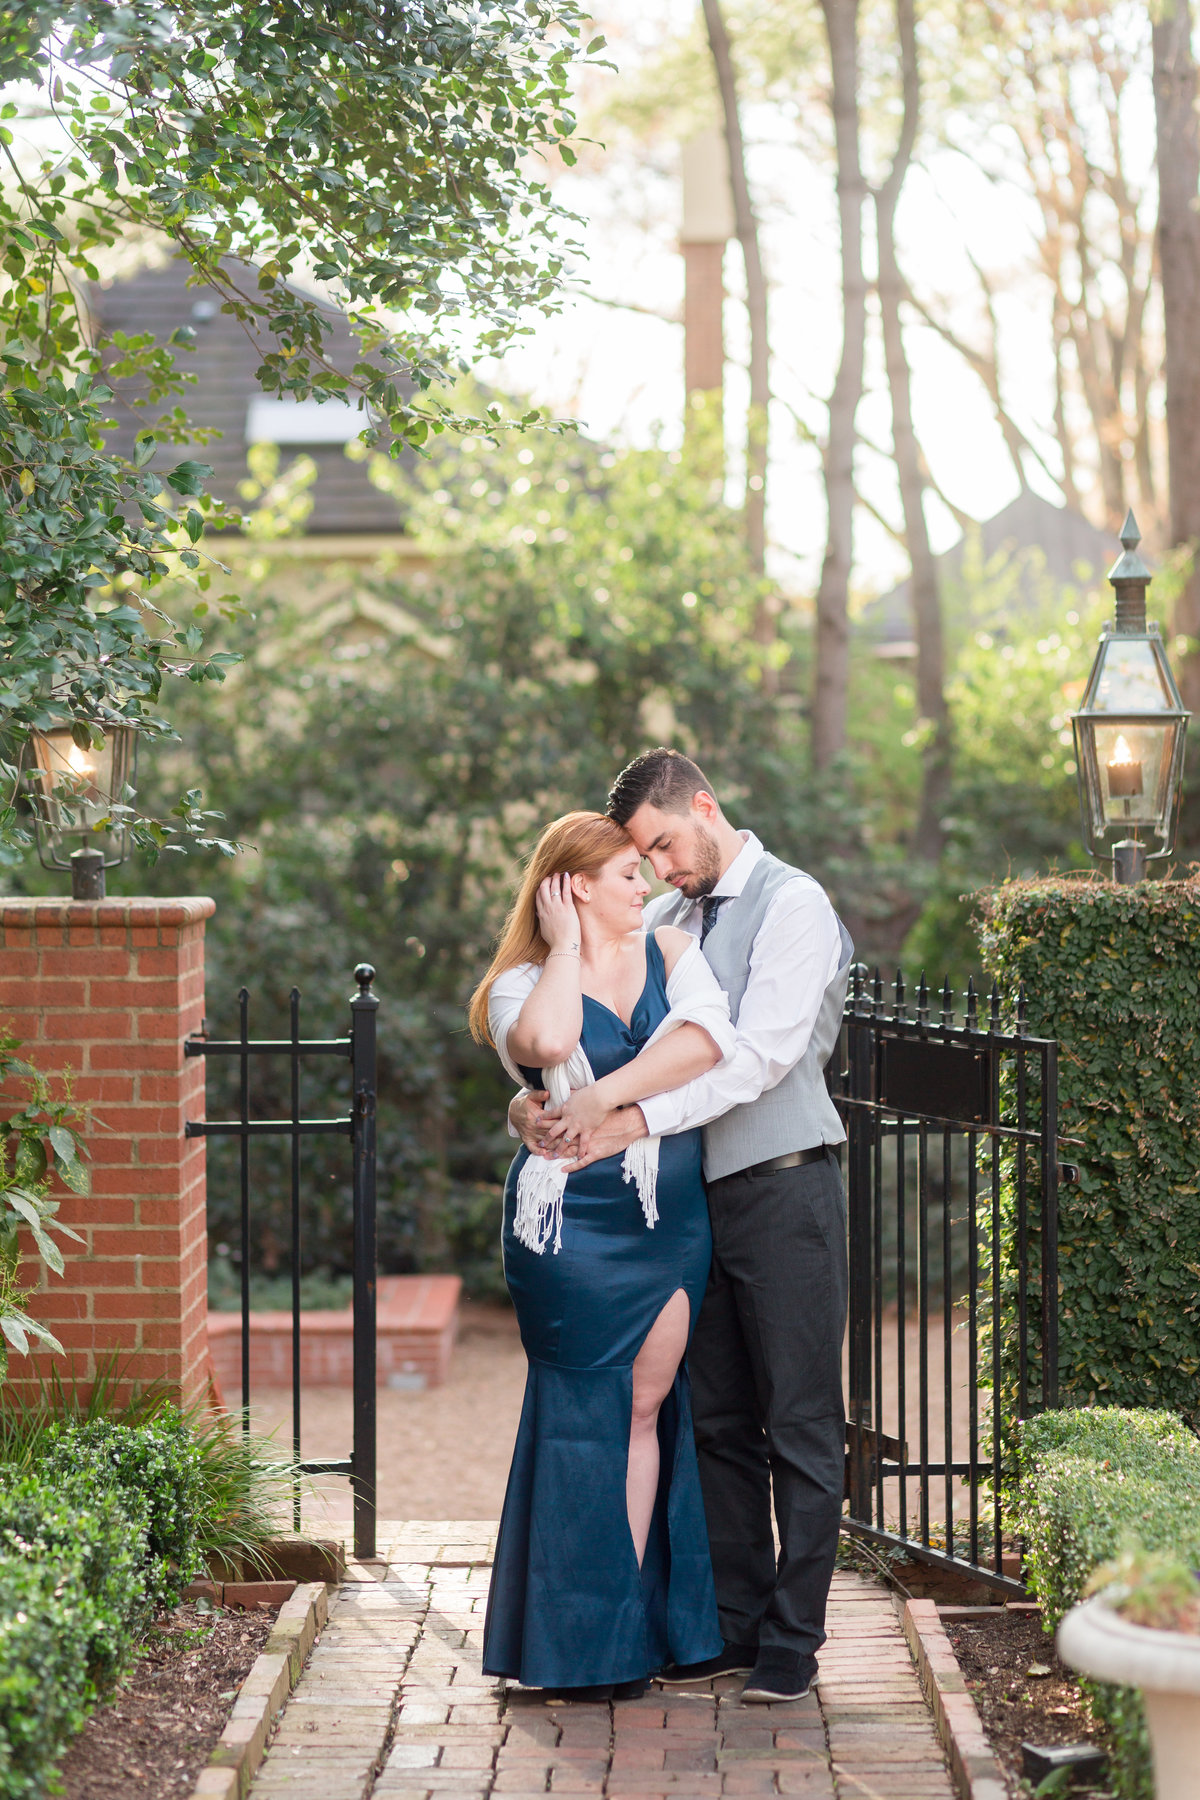 Meagan and Michael Engaged-Samantha Laffoon Photography-99